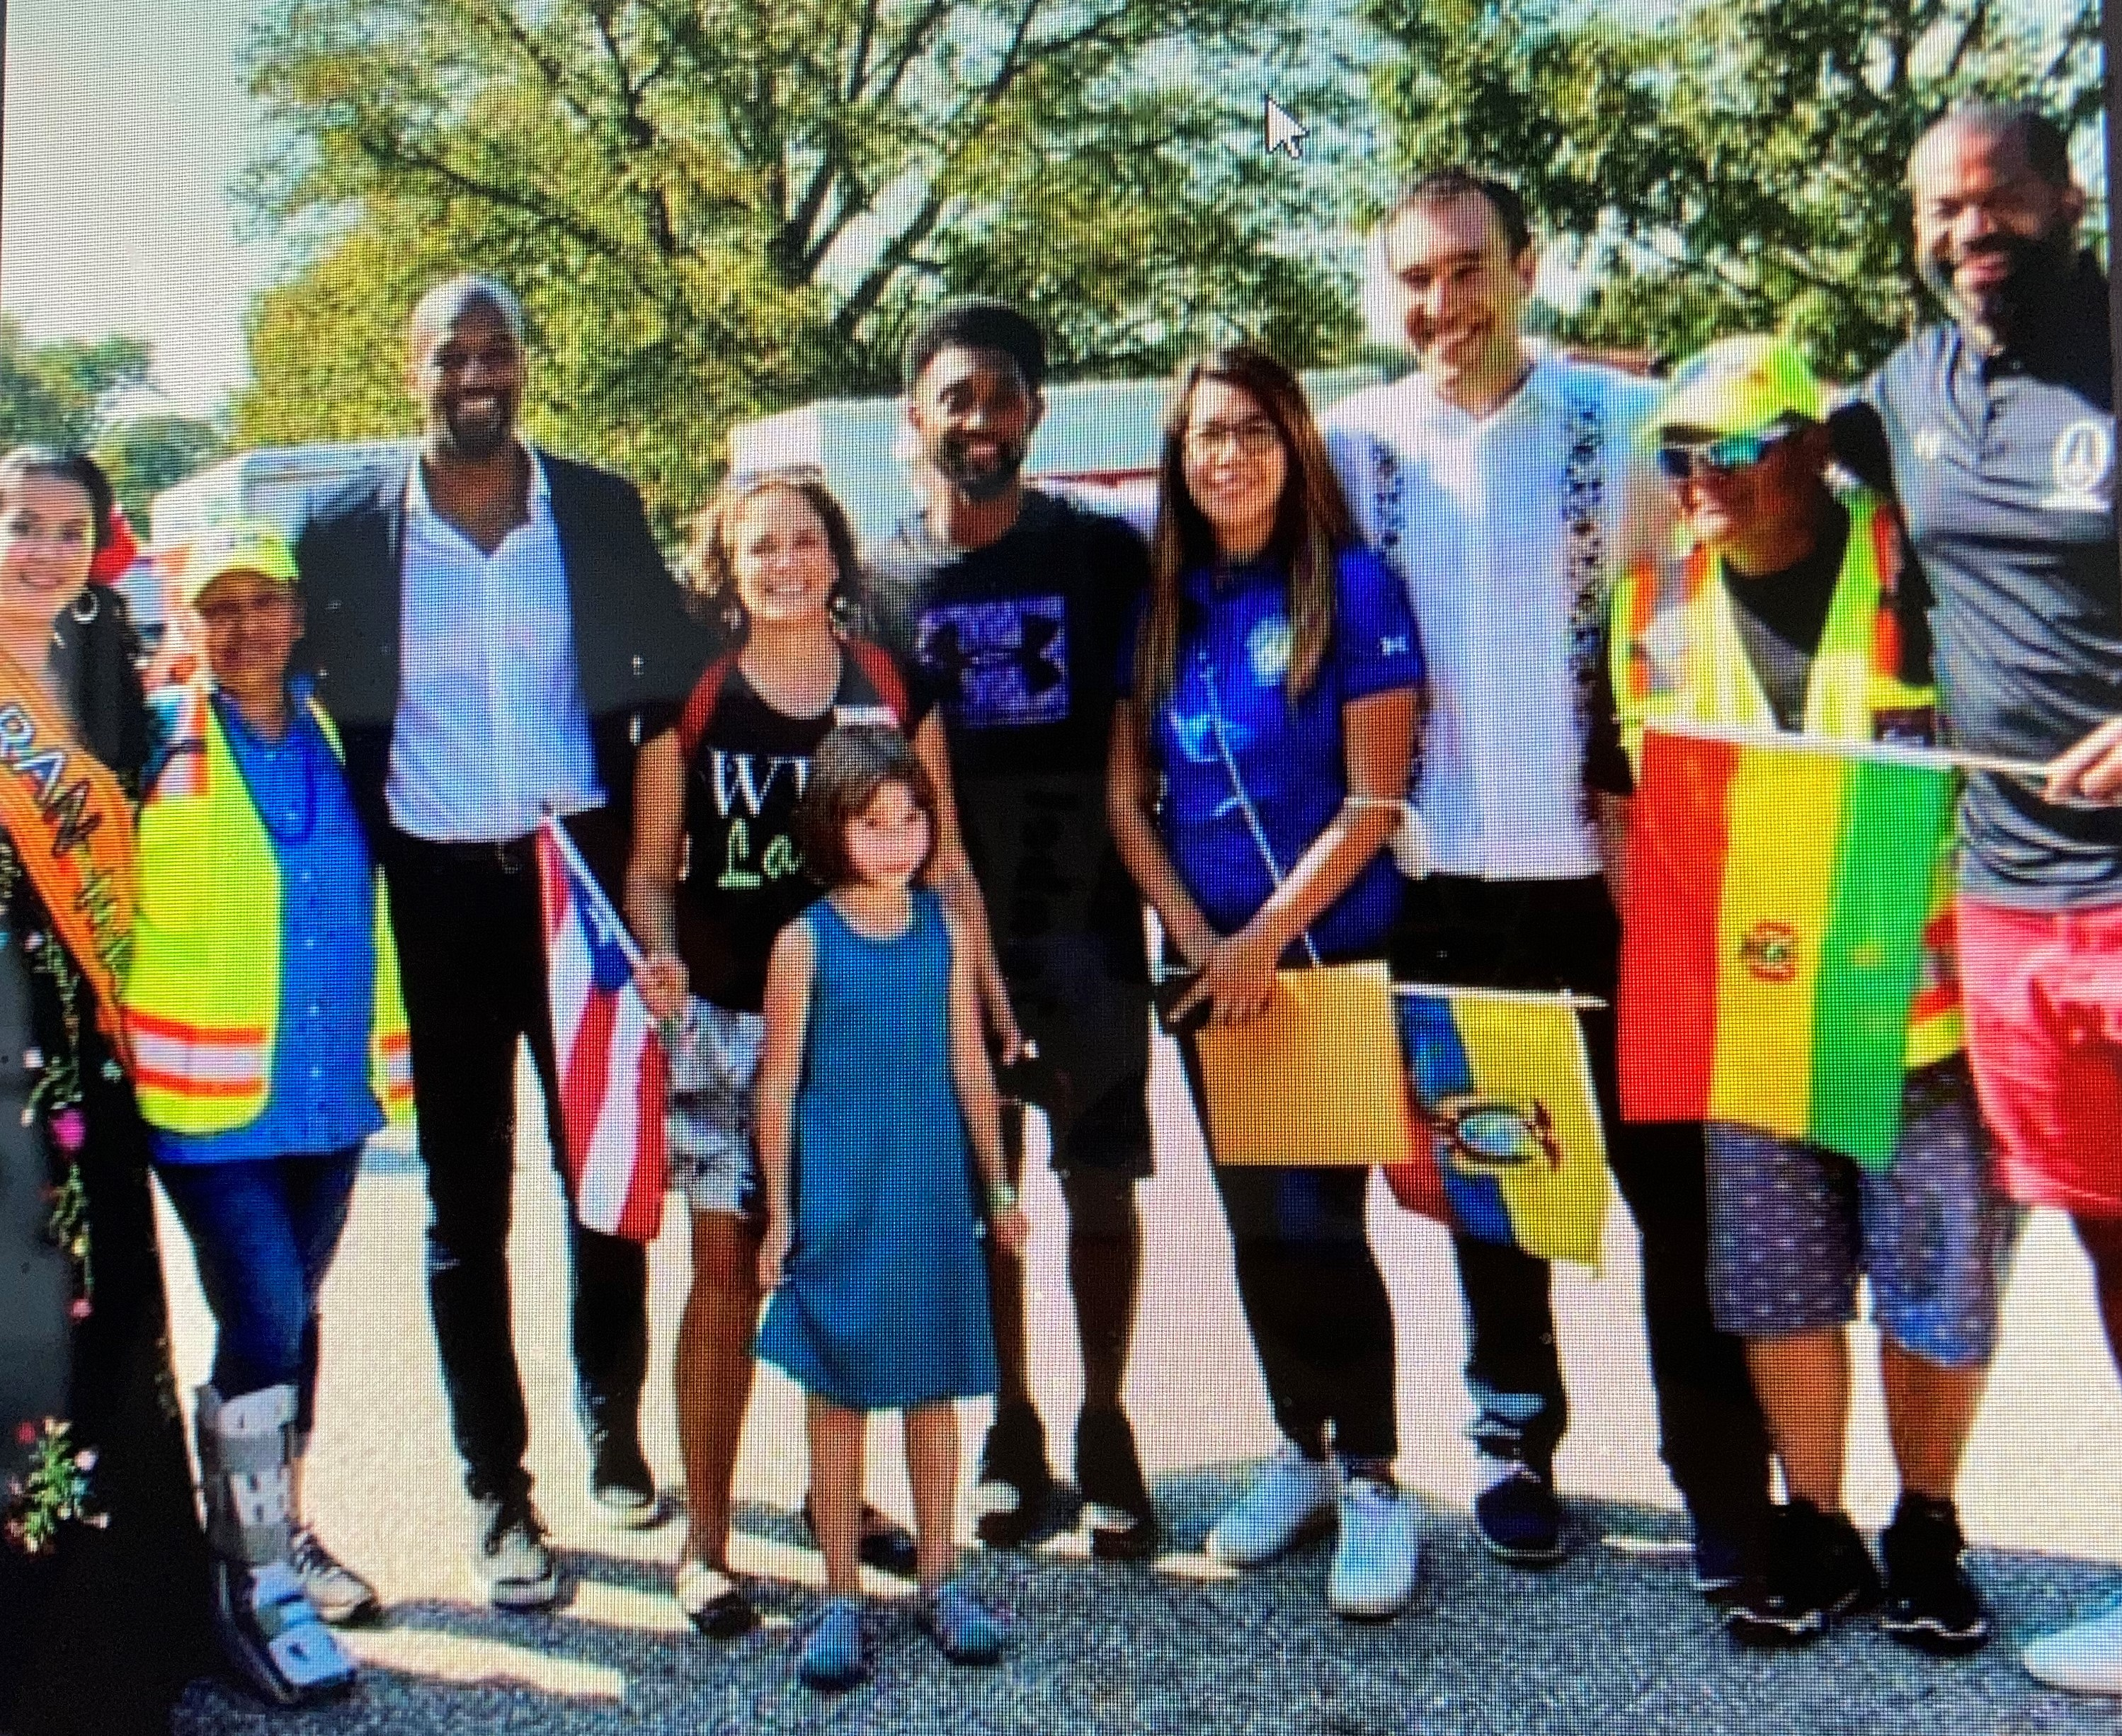 Council members Mark Conway, Odette Ramos, Zeke Cohen and (far right) Council President Nick Mosby pose all maskless with the mayor at yesterday's Latin Parade. To the immediate right of mayor is Catalina Rodriguez-Lima, director of the Mayor's Office of Immigrant Affairs. (Twittter)